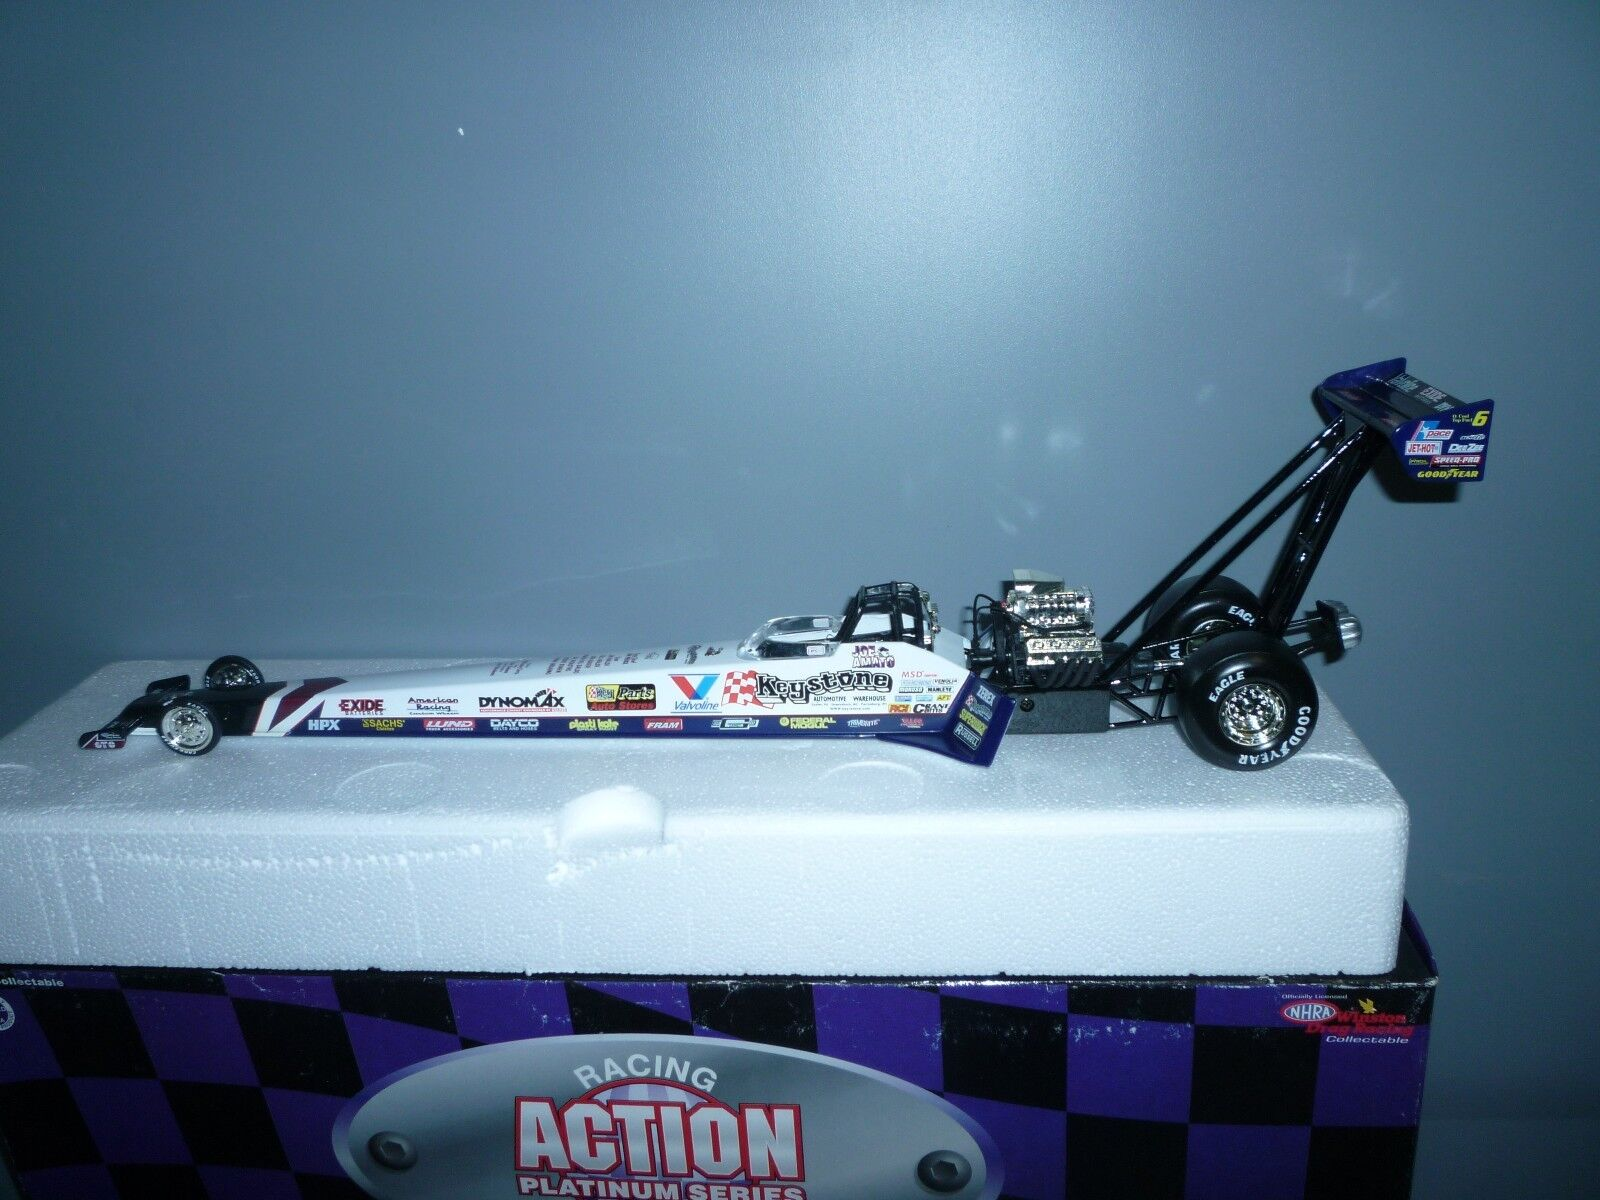 JOE AMATO     1997 KEYSTONE, 1 24 SCALE DIE CAST NHRA TOP FUEL DRAGSTER.